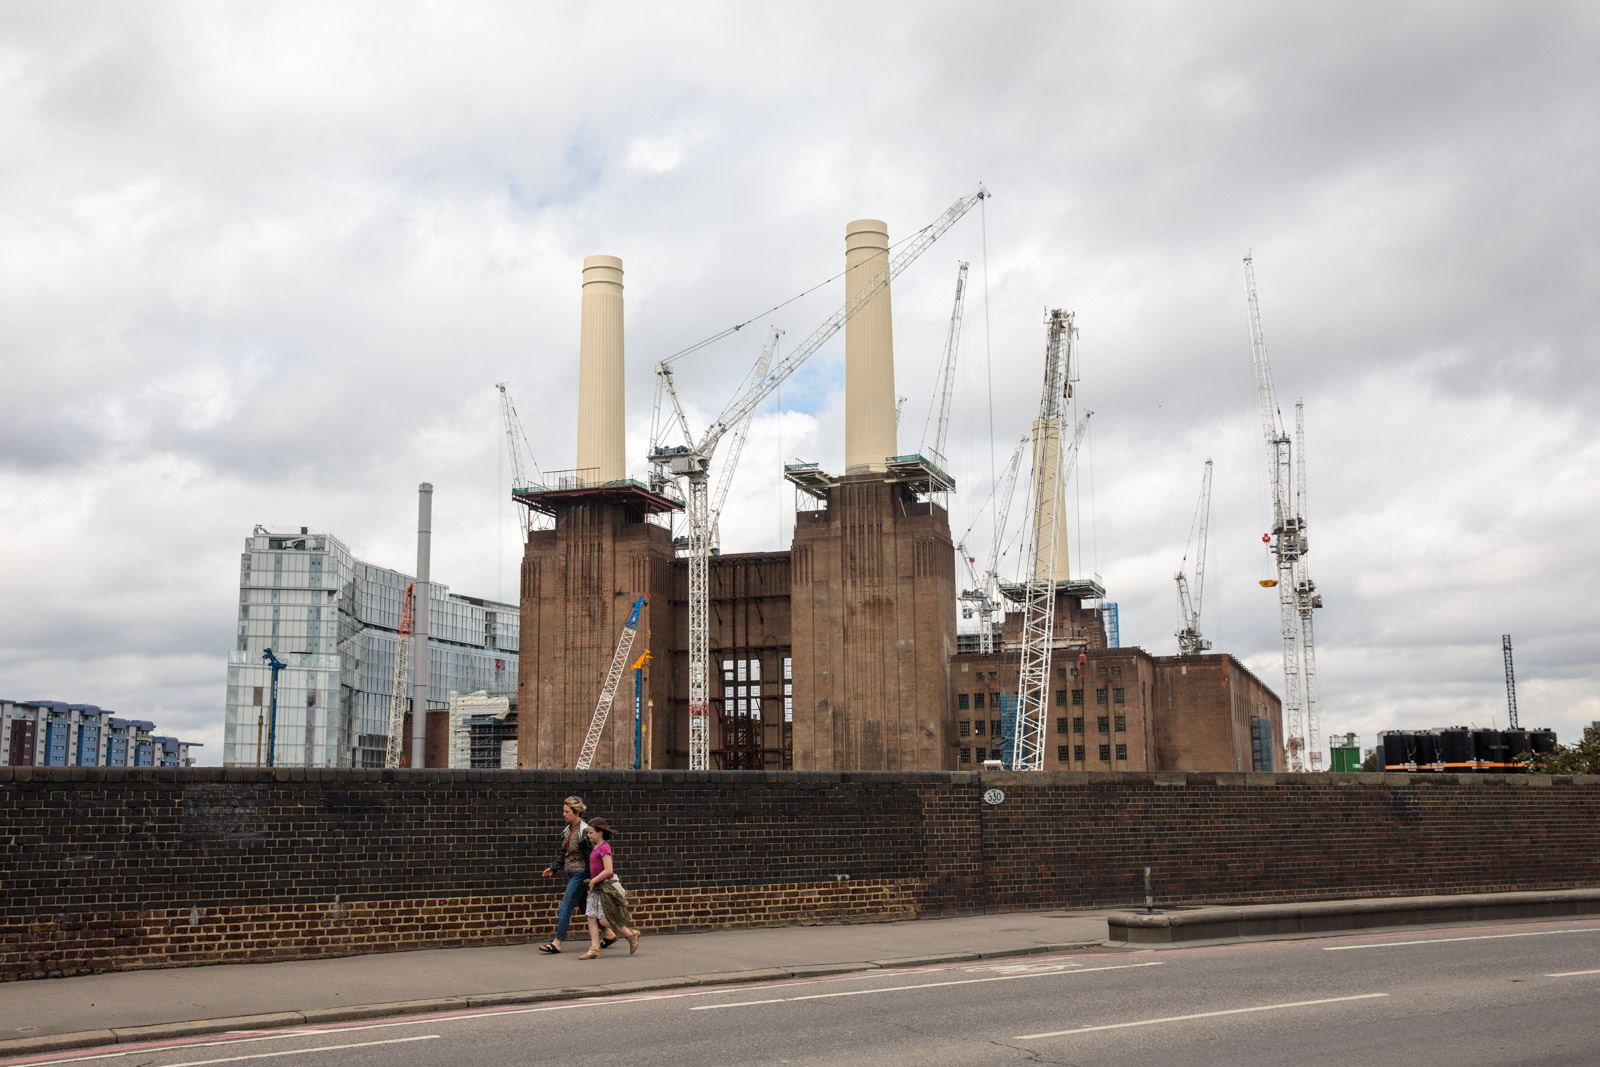 Cranes tower over the Battersea Power Station development July 21, 2017 in London.